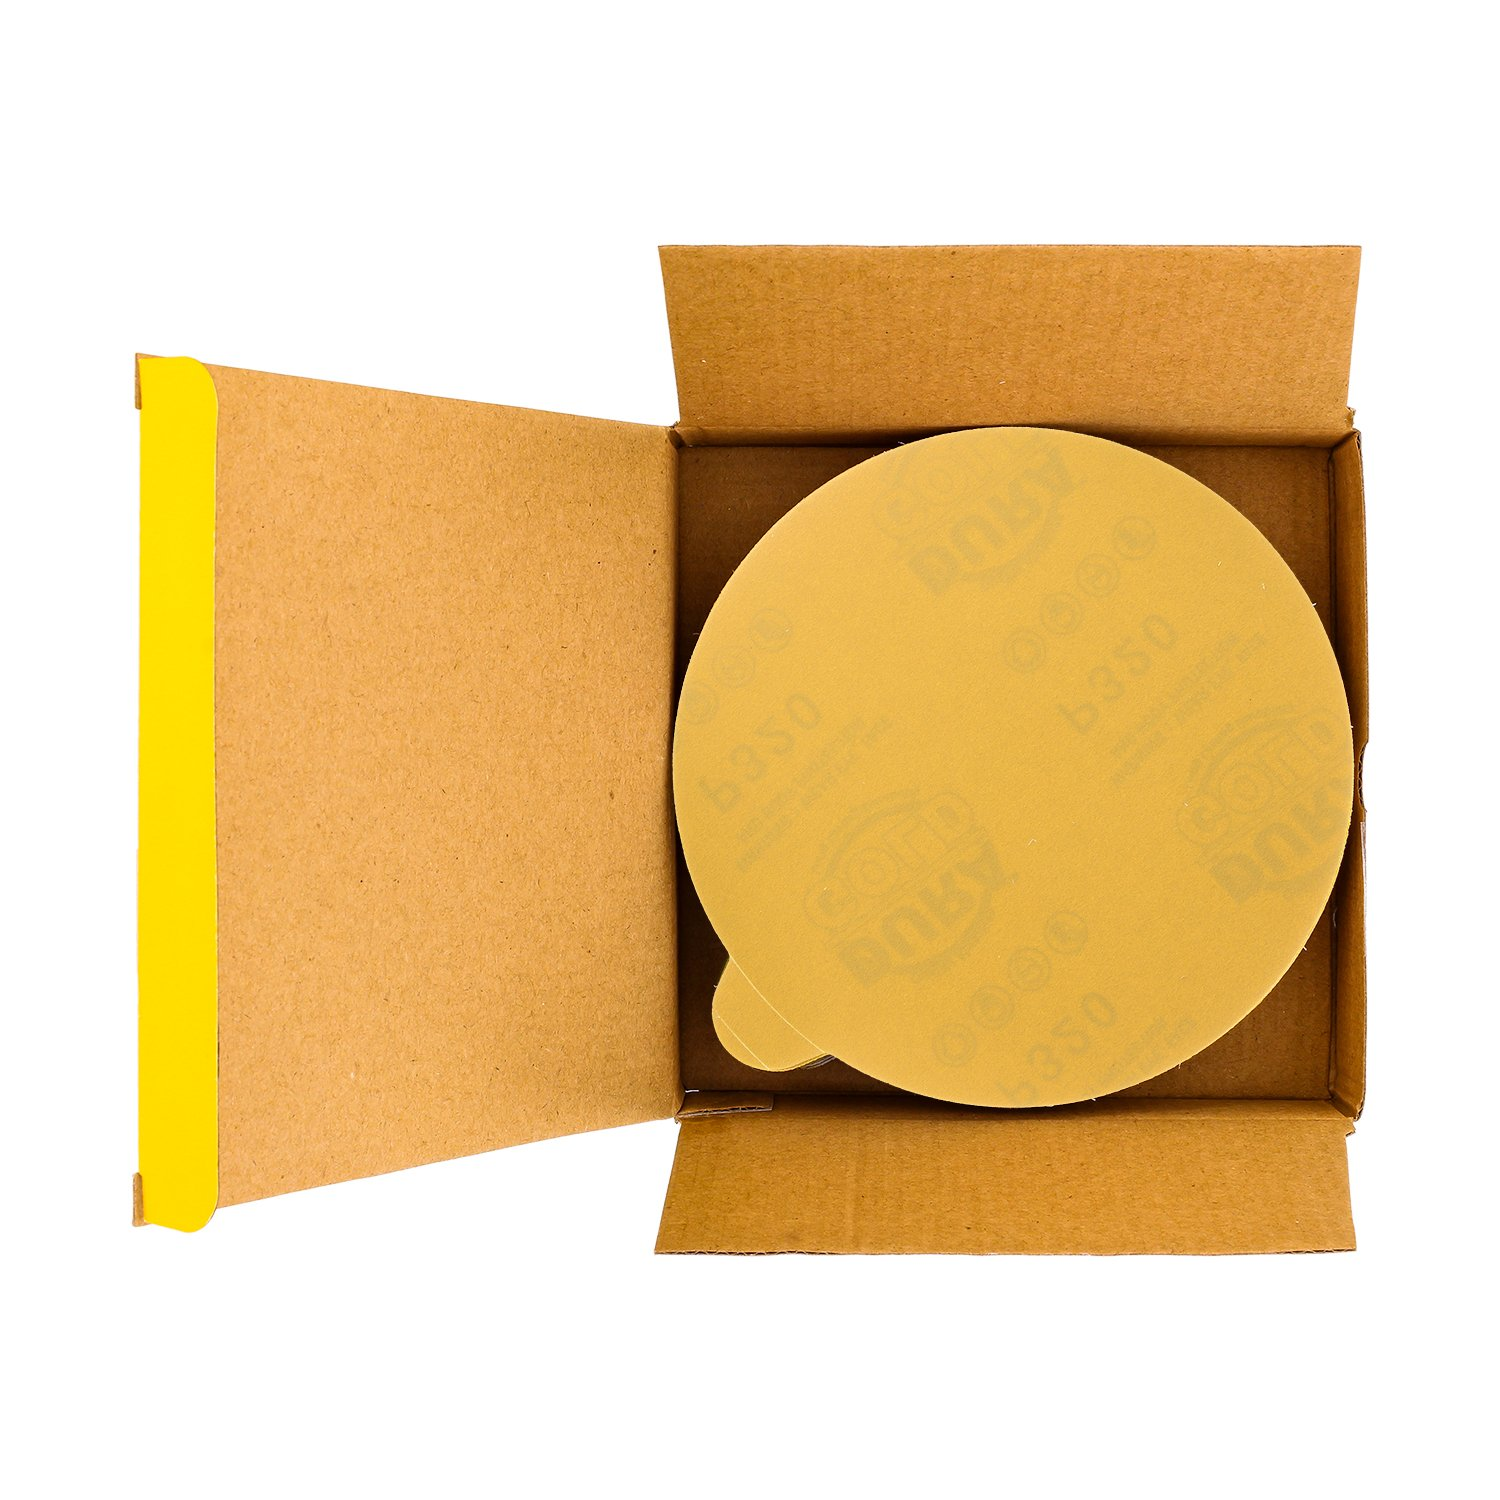 Dura-Gold Box of 25 Sandpaper Finishing Discs for Automotive and Woodworking 40 Grit 6 Gold PSA Self Adhesive Stickyback Sanding Discs for DA Sanders Premium